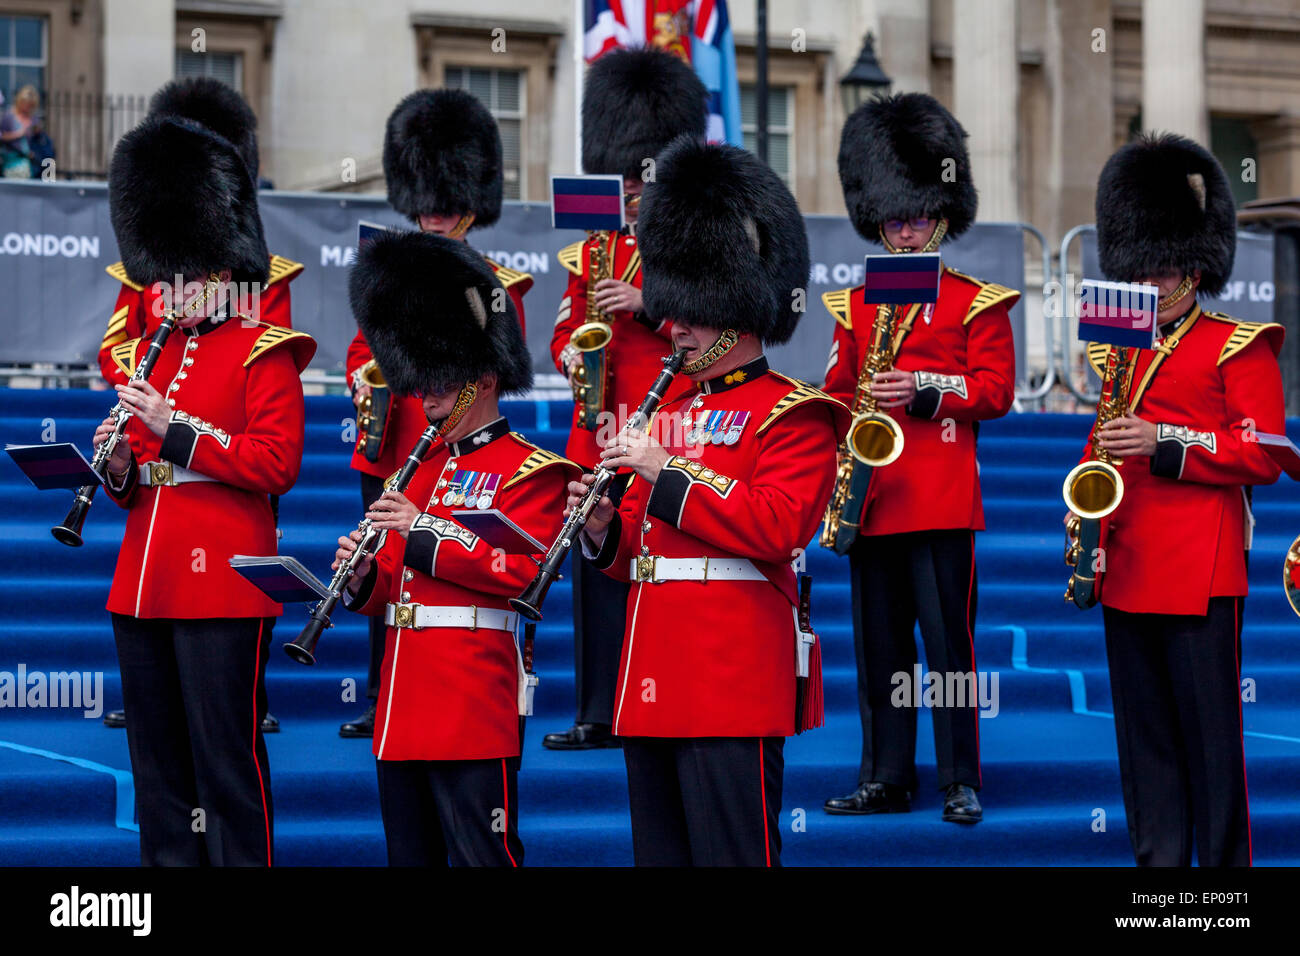 The Band Of The Grenadier Guards Perform In Trafalgar Square On The 70th Anniversary Of VE Day, London, England Stock Photo